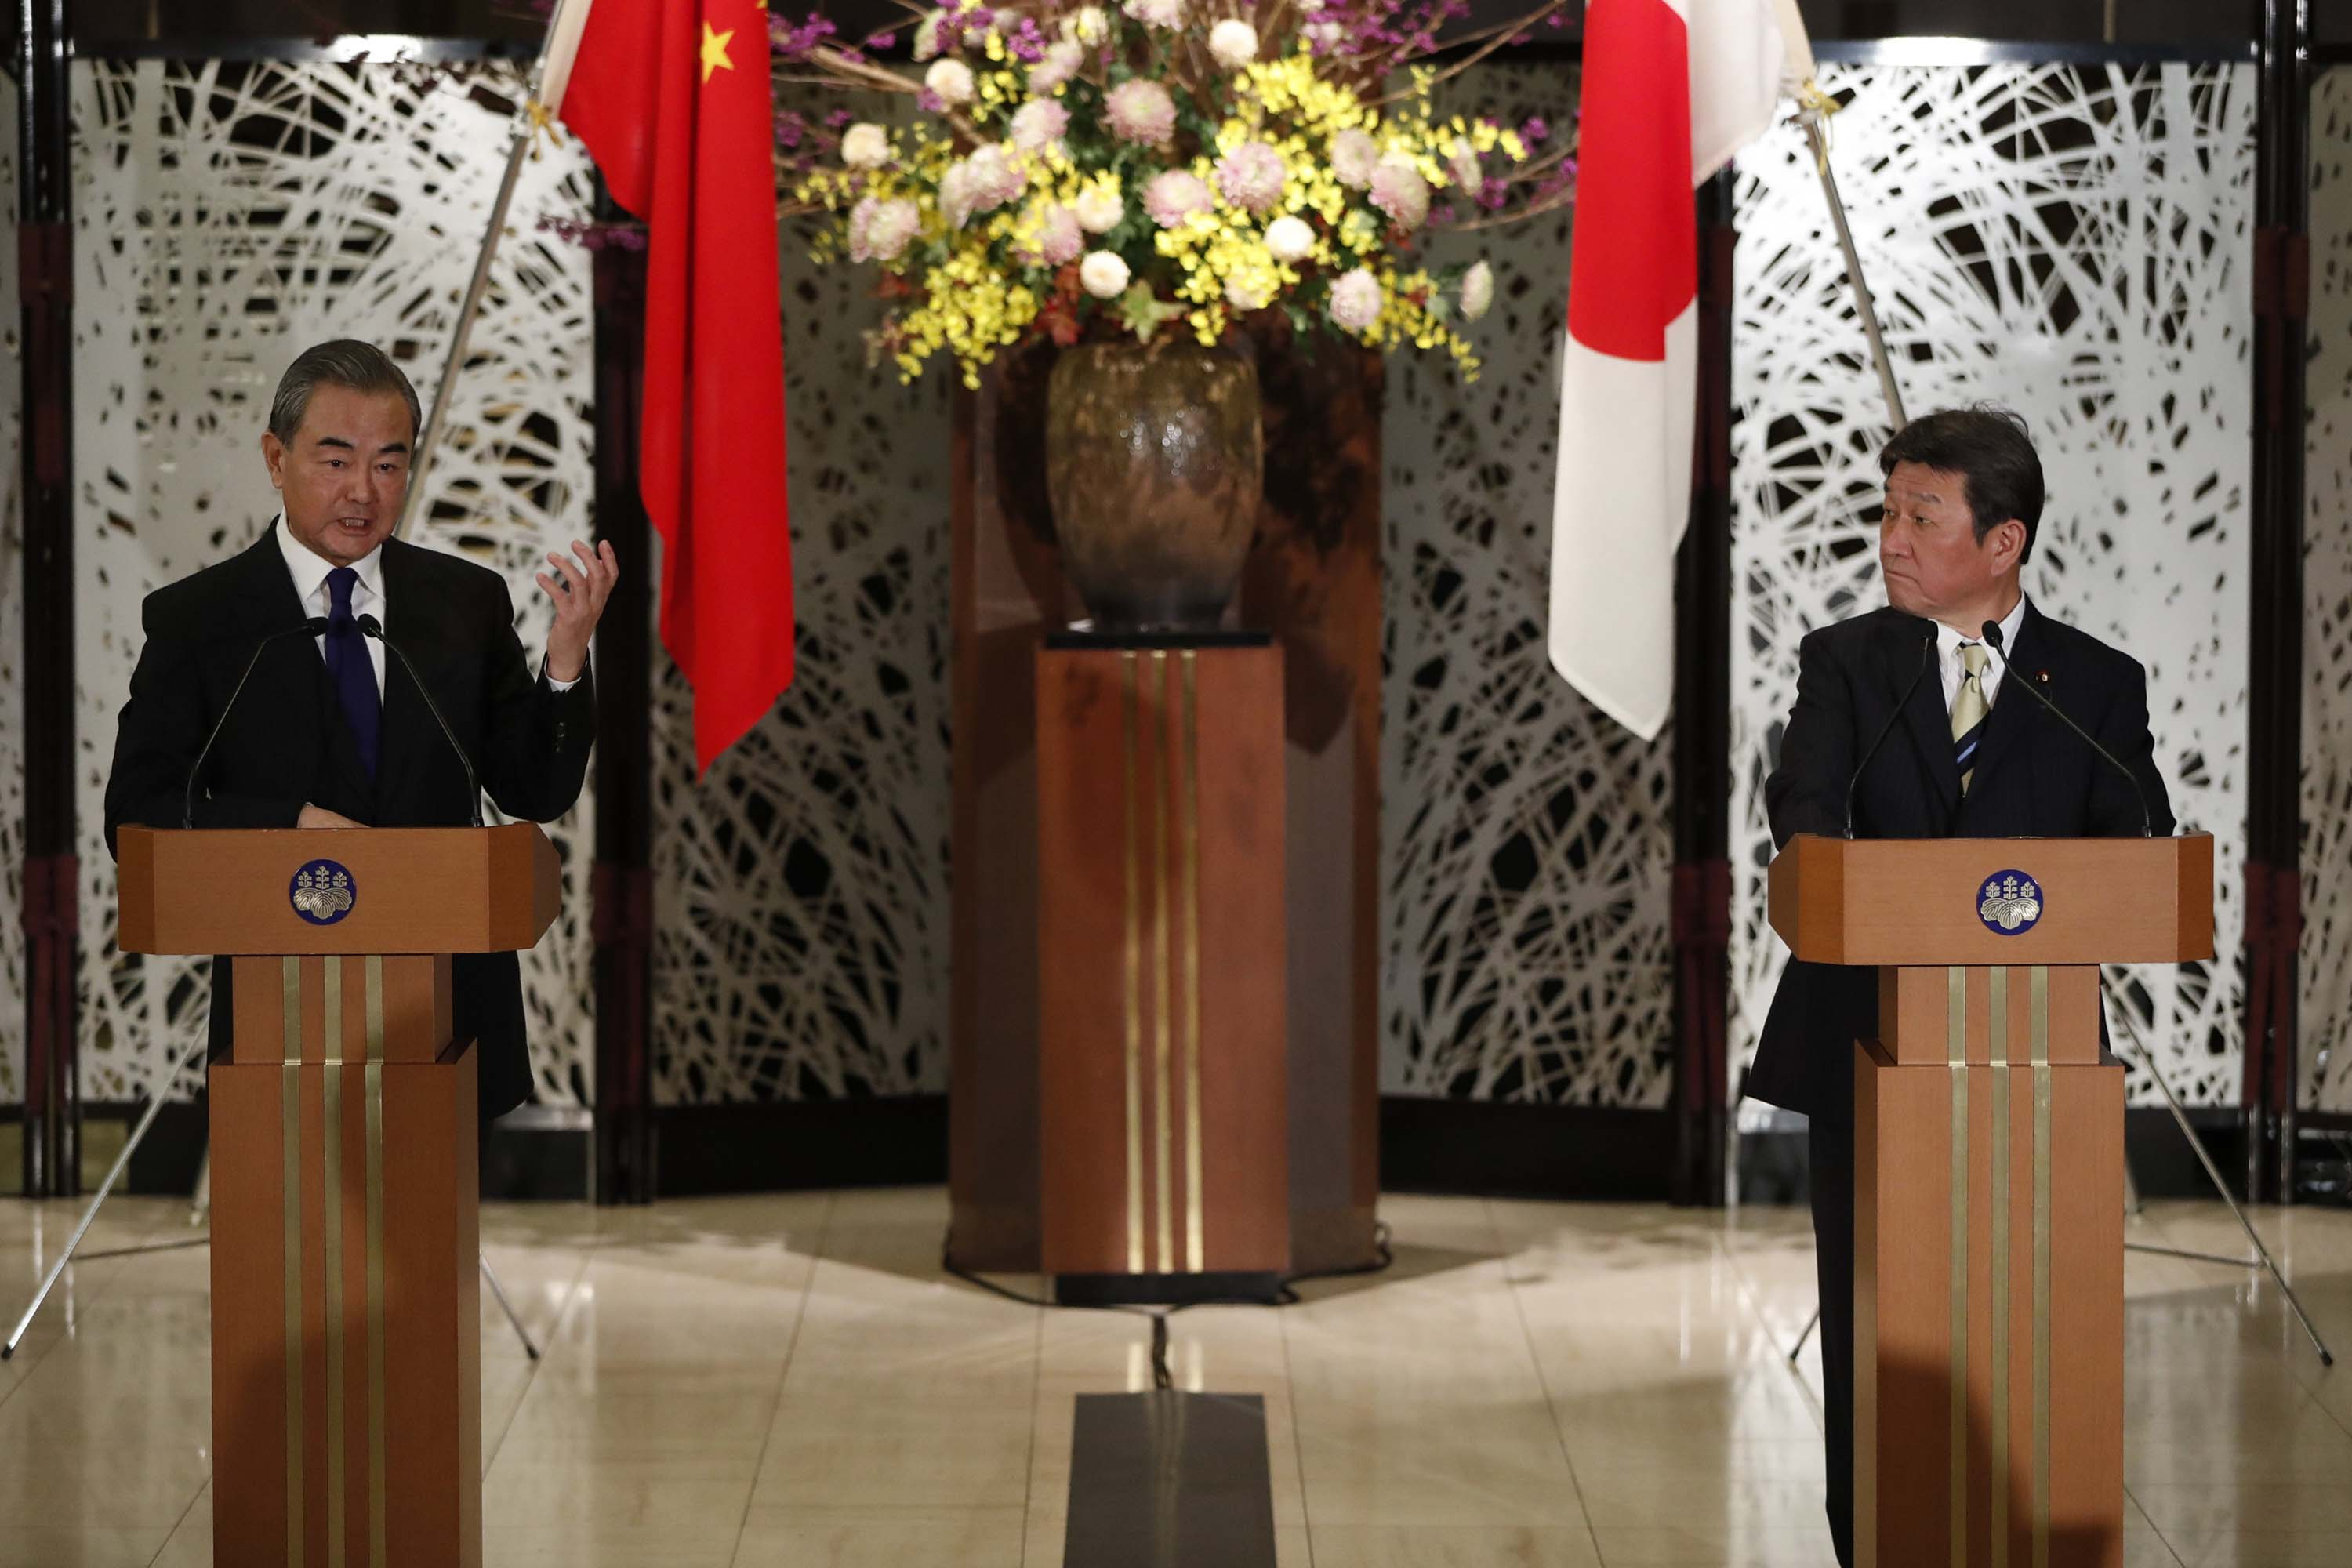 China's State Councillor and Foreign Minister Wang Yi, left, holds a joint press conference with his Japanese counterpart Toshimitsu Motegi after their meeting in Tokyo, Japan, on November 24.